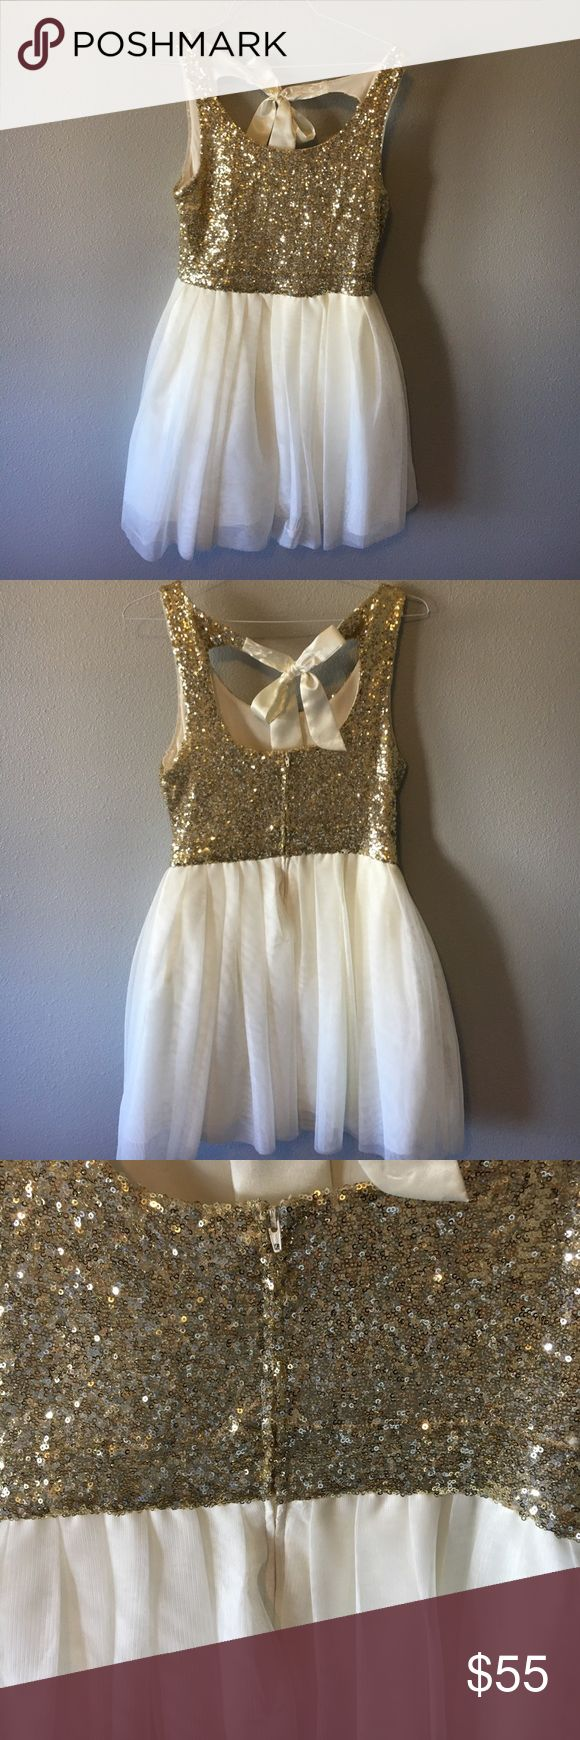 Occasion Dress Sequined gold occasion dress with tulle bottom and bow in back. Worn only once B. DARLIN Dresses